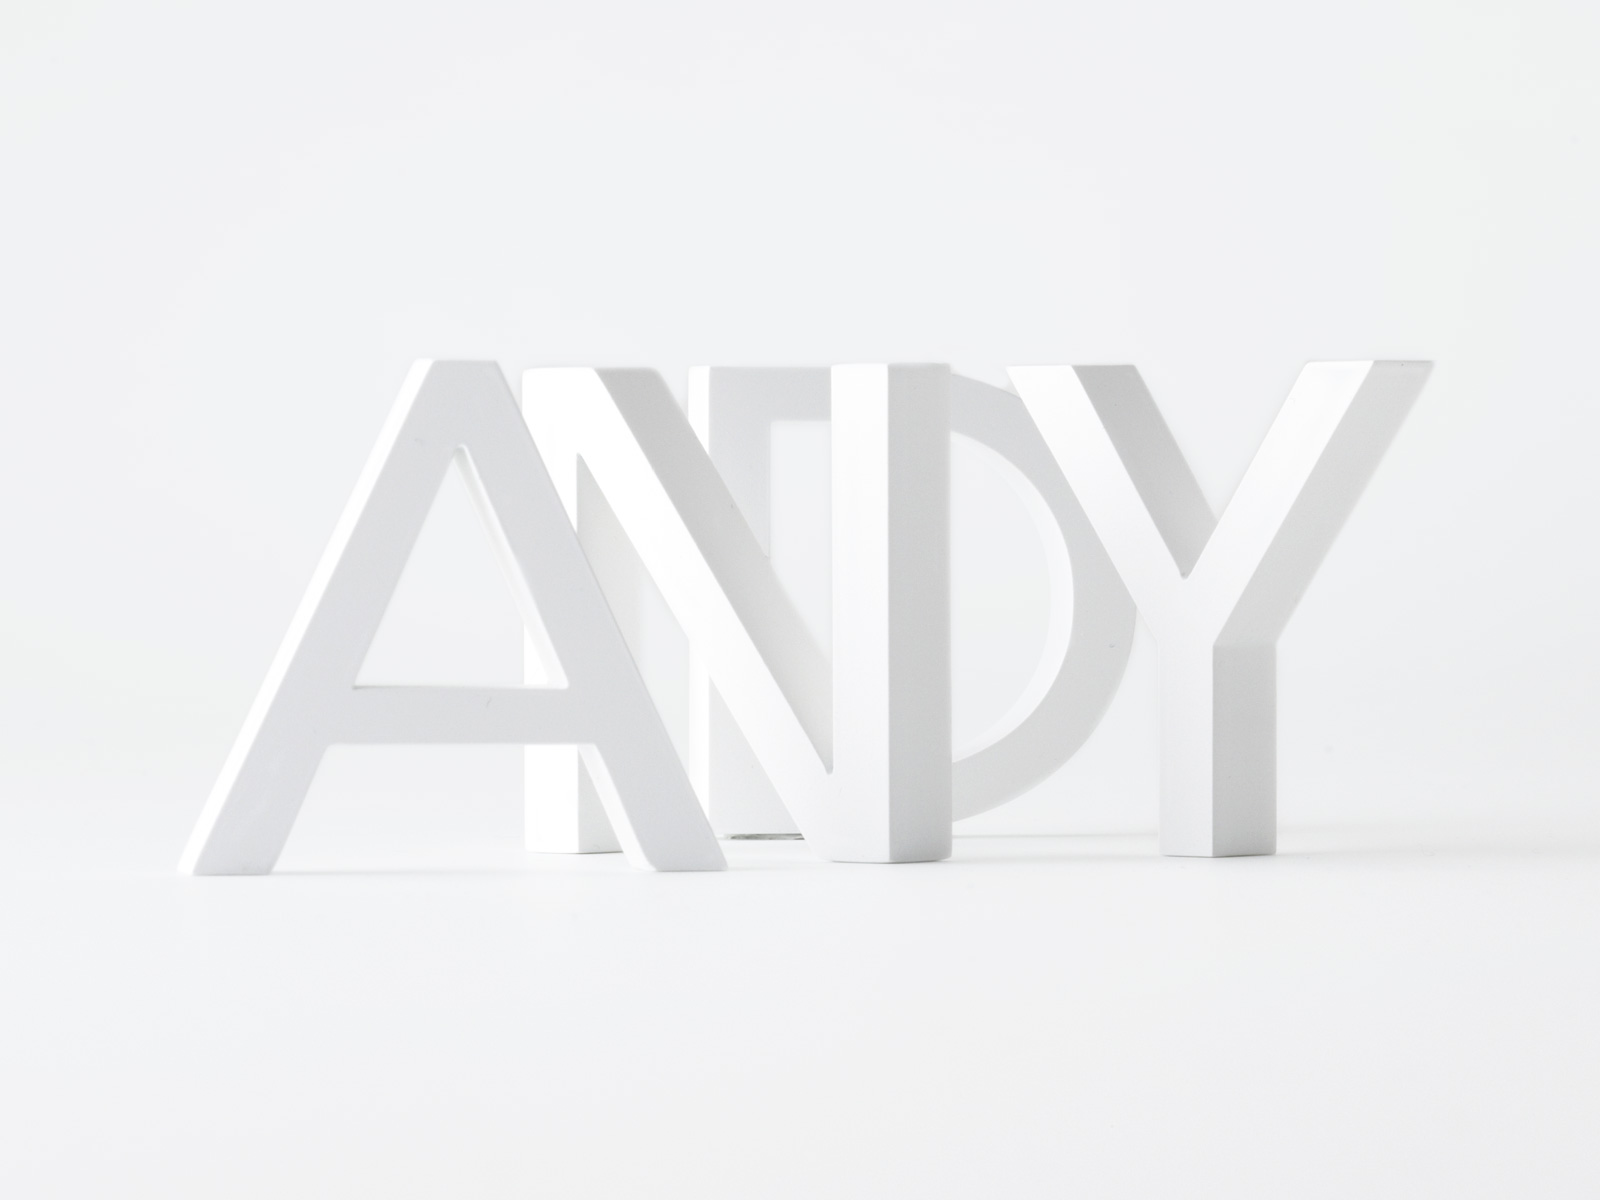 Andy Grimshaw - Andy 3D Logo